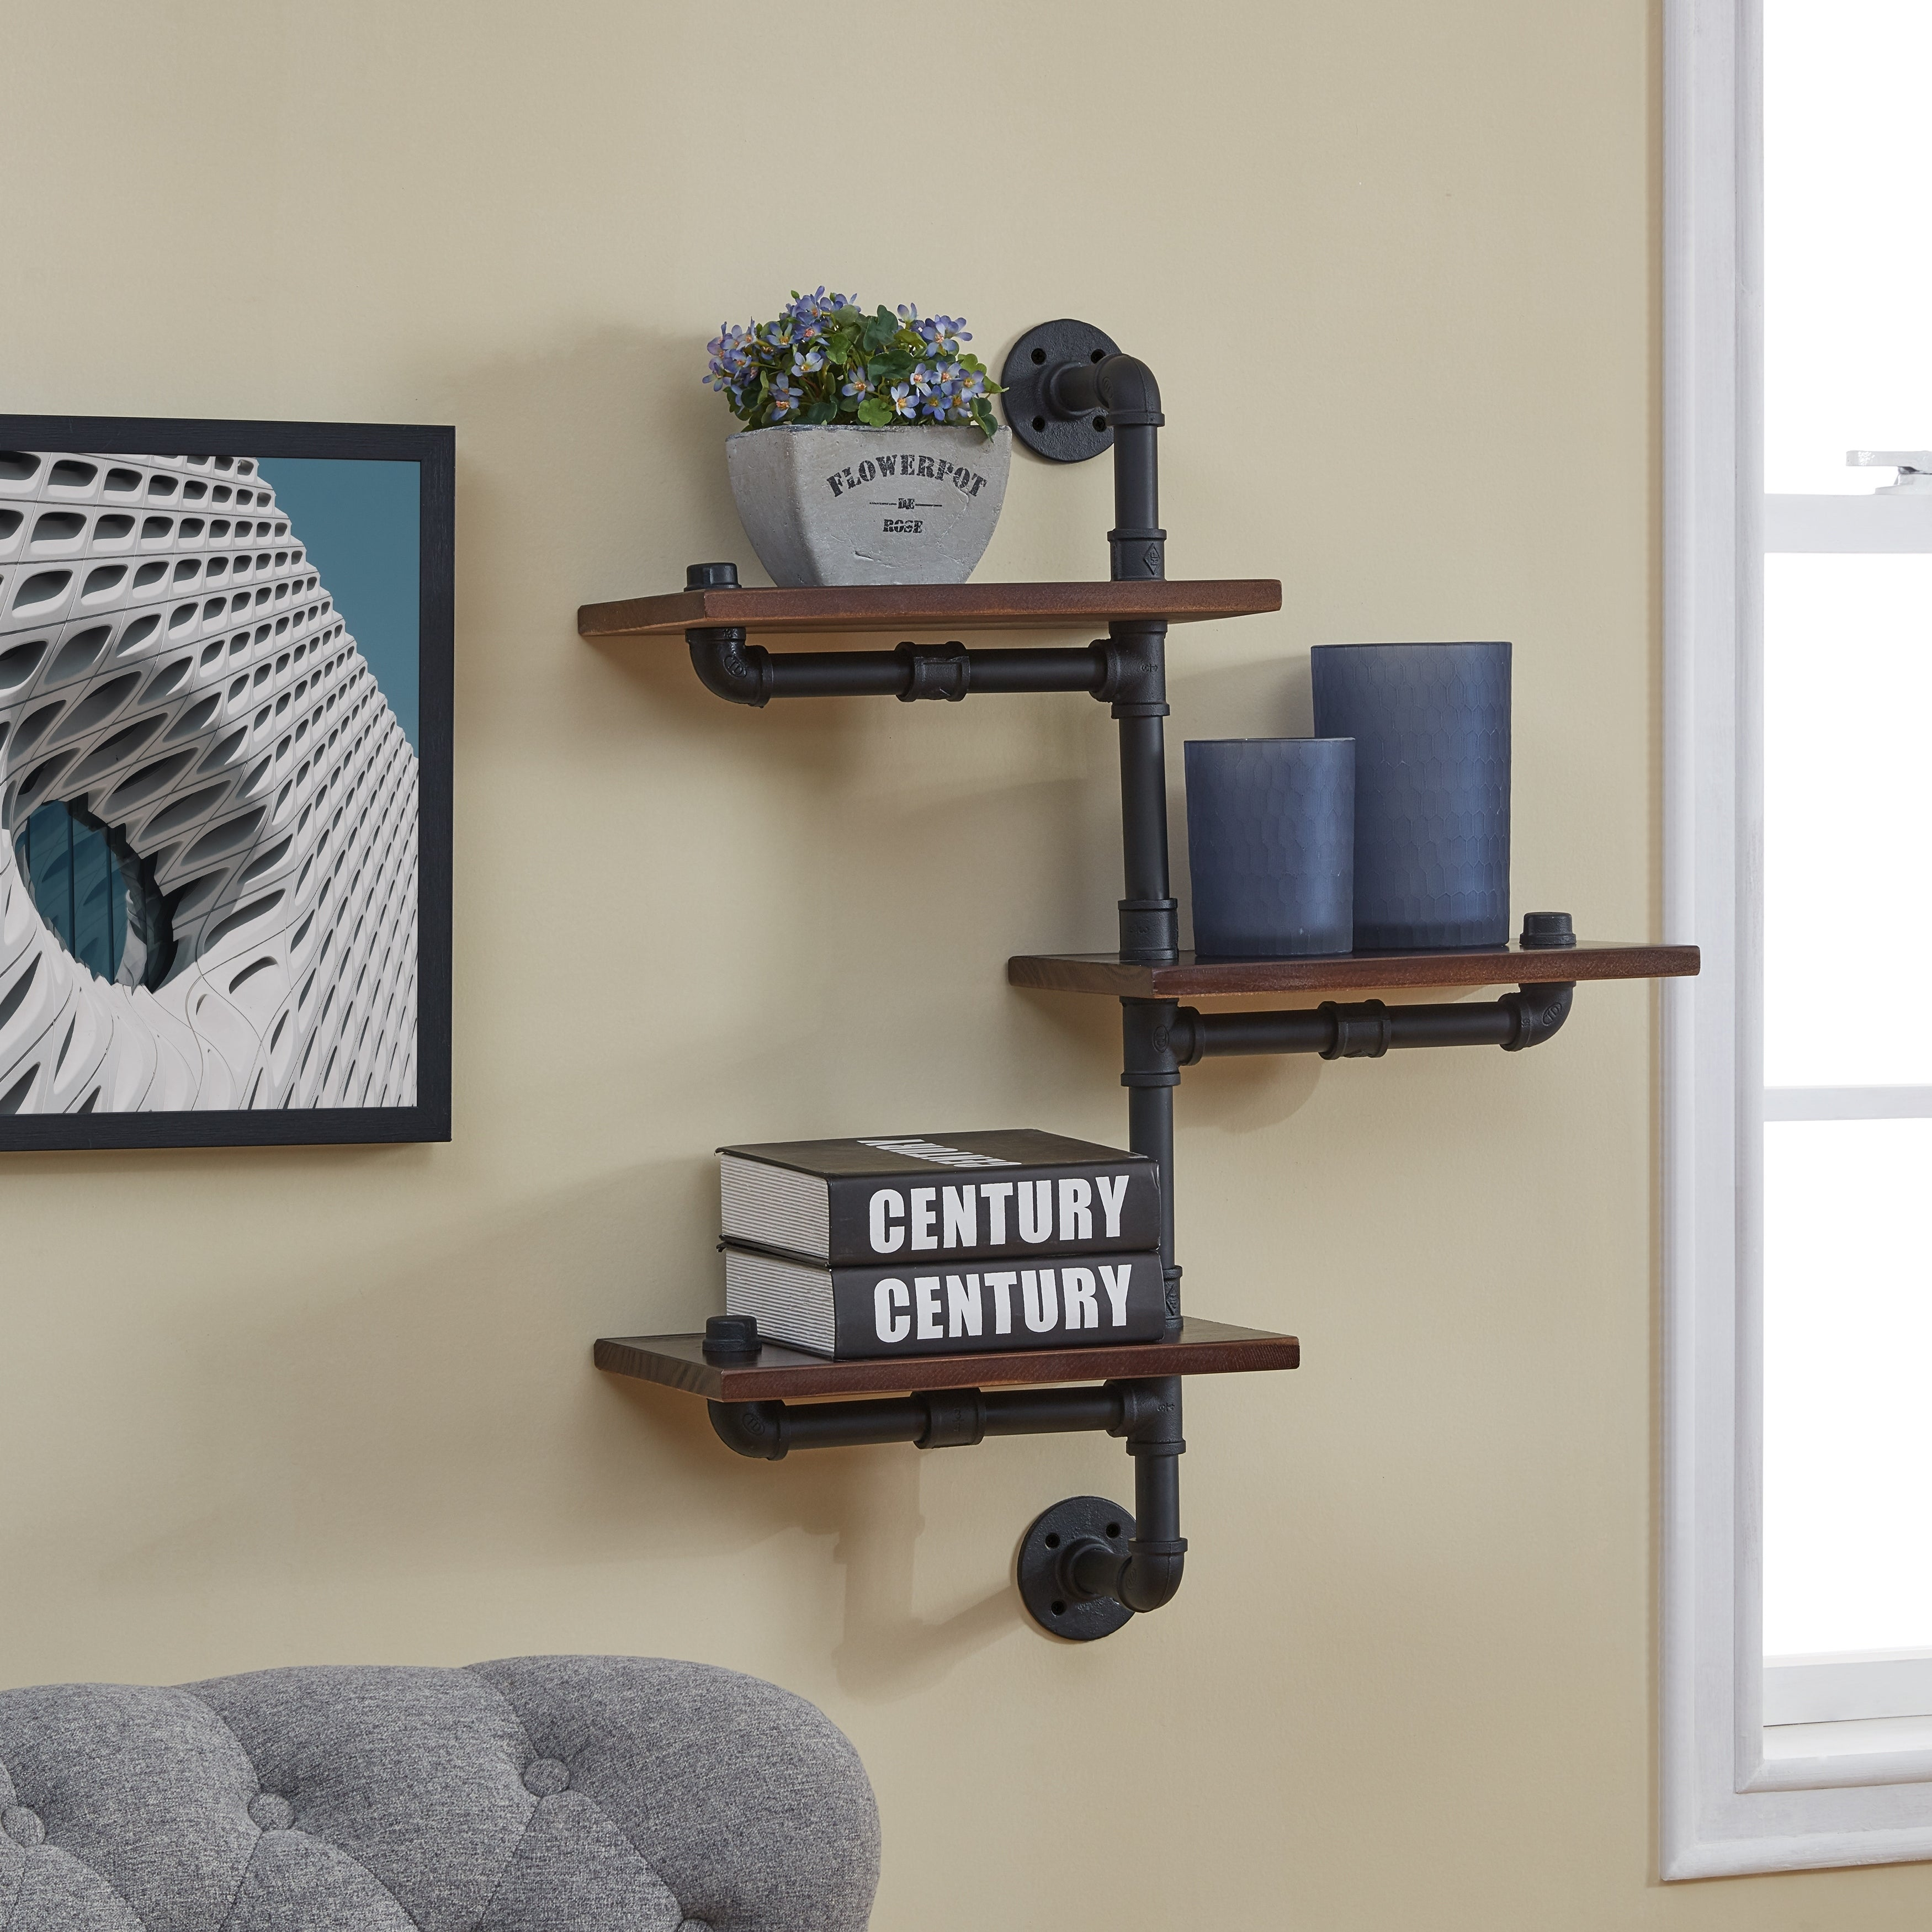 danya tier vertical staggered industrial rustic pipe shelves floating kitchen inch deep shelf wooden cubes bunnings modern wall ideas utensils storage containers free fireplace